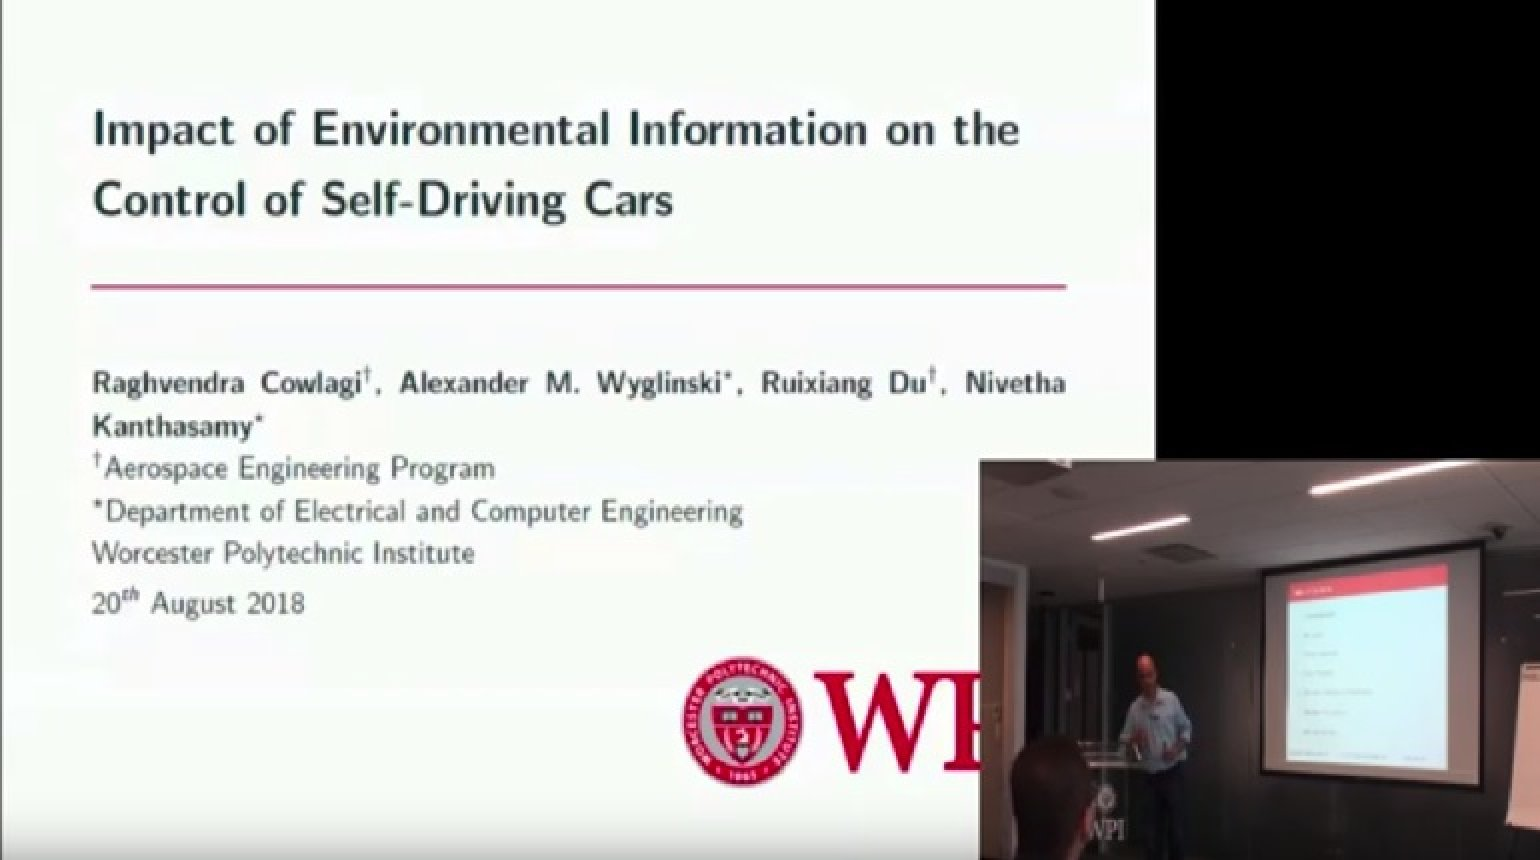 Video - Impact of Environmental Information on the Control of Self-Driving Cars - Gill, Heath